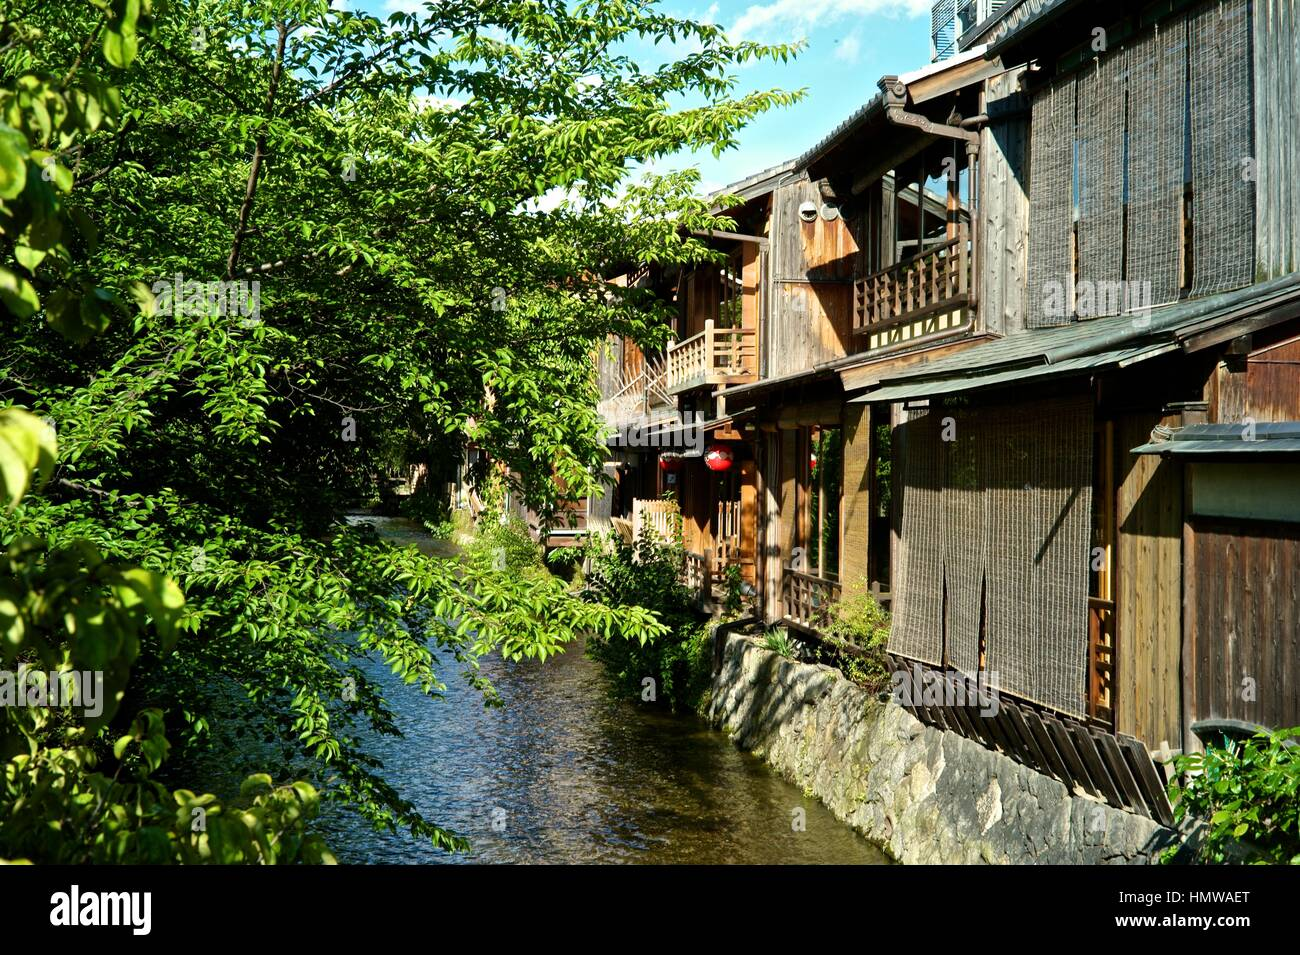 Shirakawa-minami-dori, One of the most beautiful and at the same time the most typical Japanese places is located - Stock Image